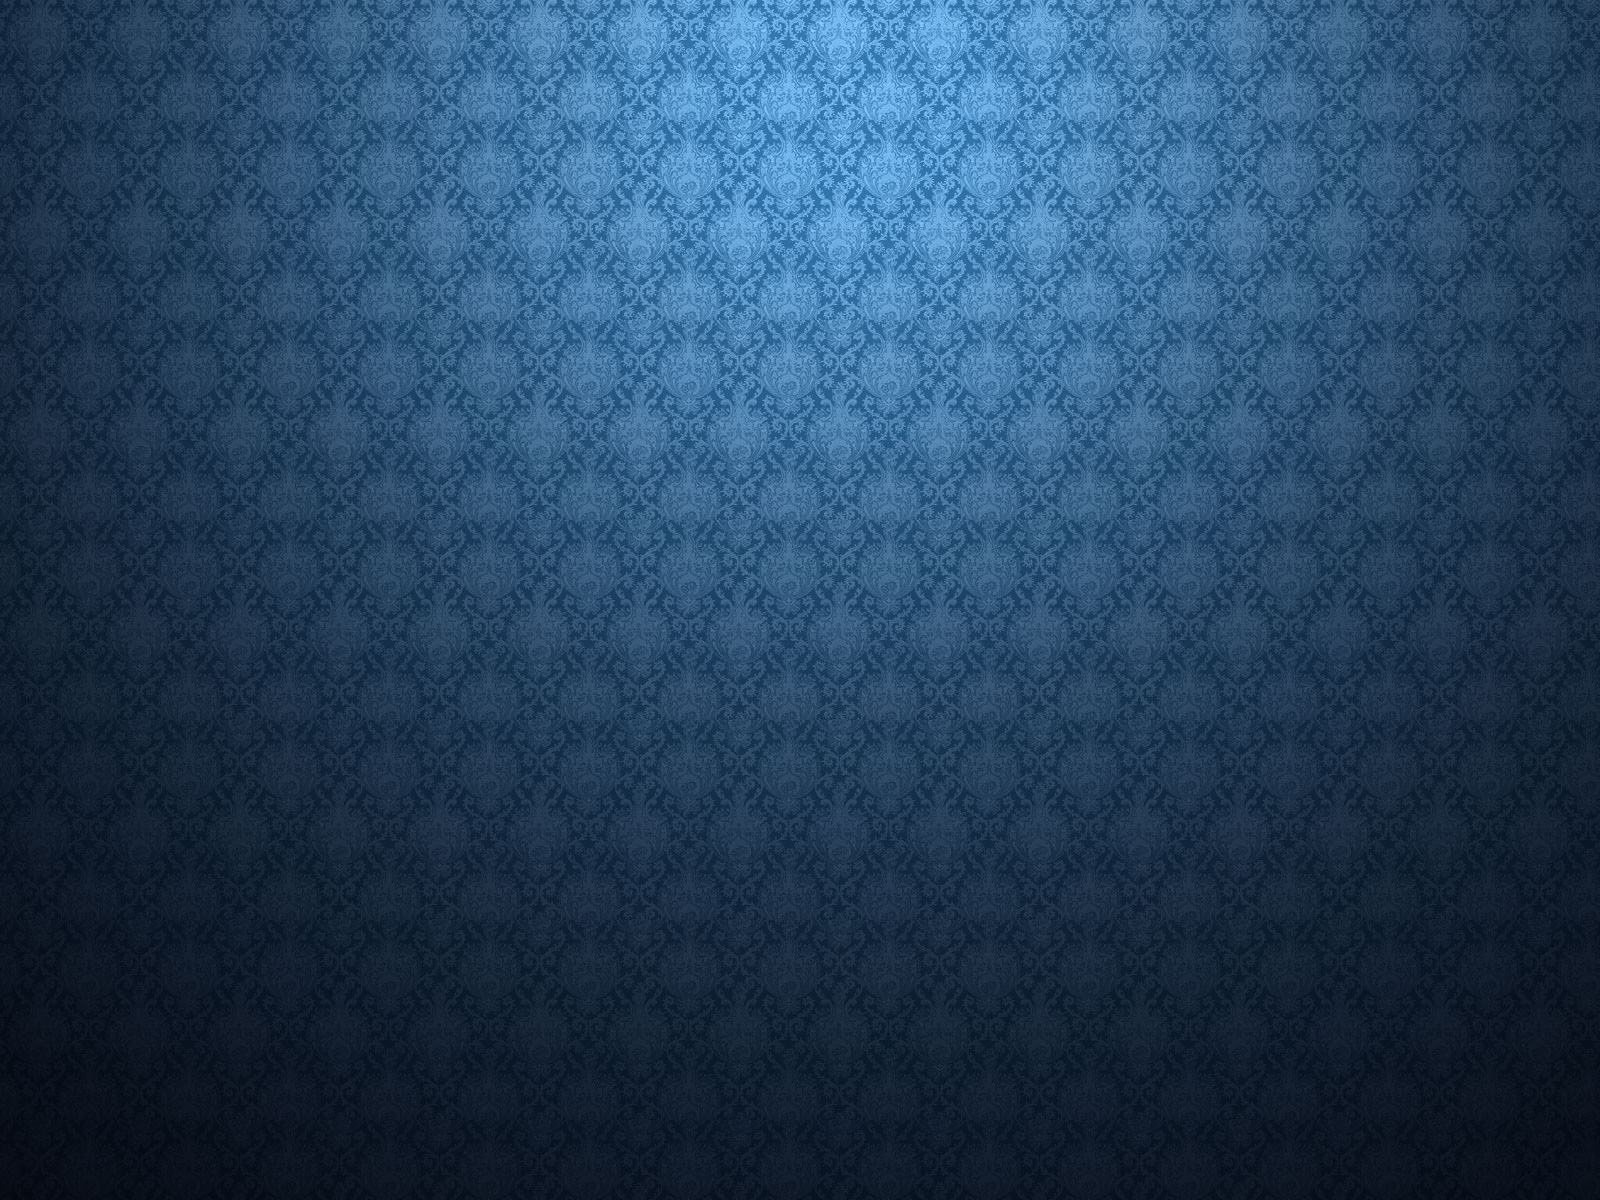 HD Blue Texture Wallpapers | Hd Wallpapers